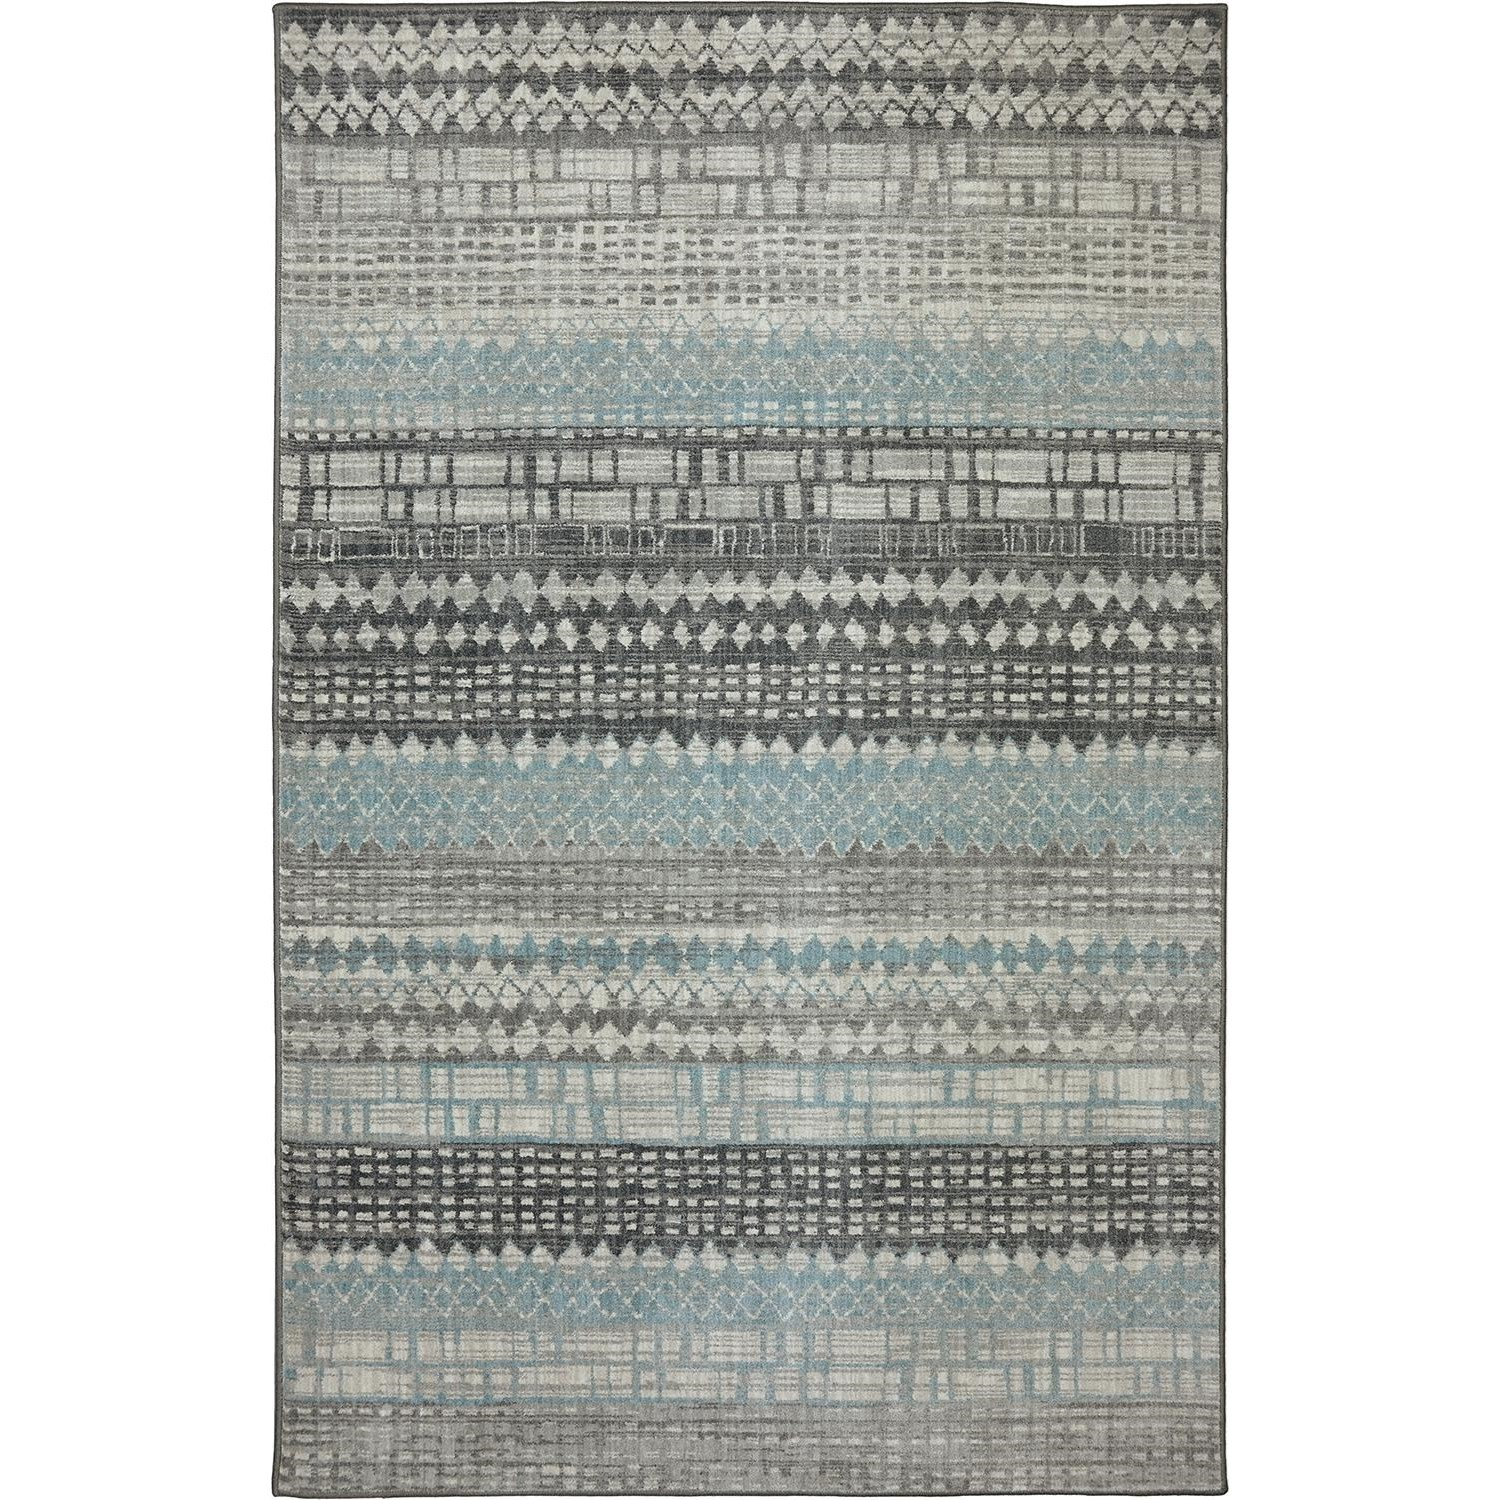 Karastan Rugs Euphoria 5'3x7'10 Eddleston Ash Grey Rug - Item Number: 90263 5913 063094